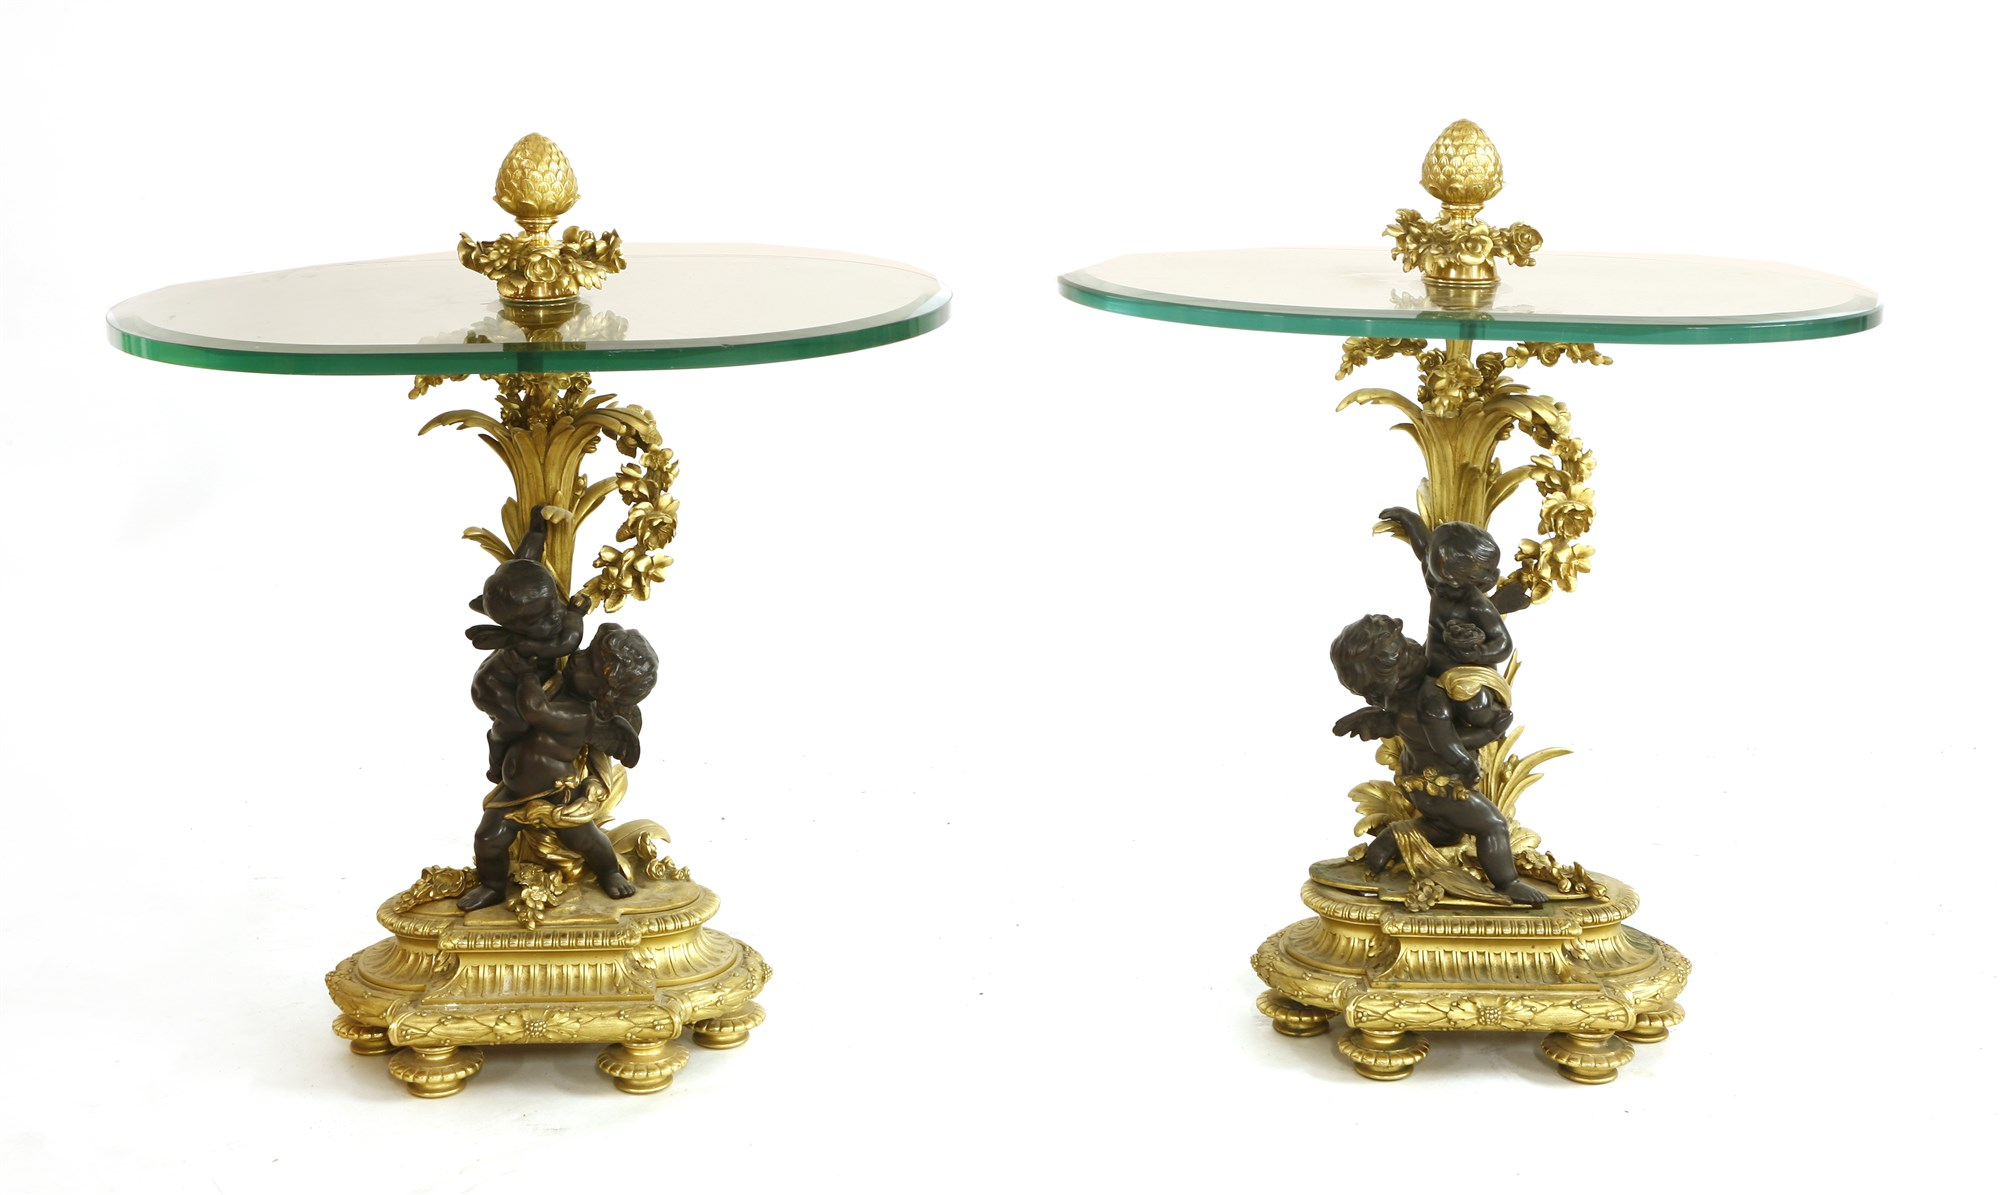 a pair of gilt bronze-mounted side tables